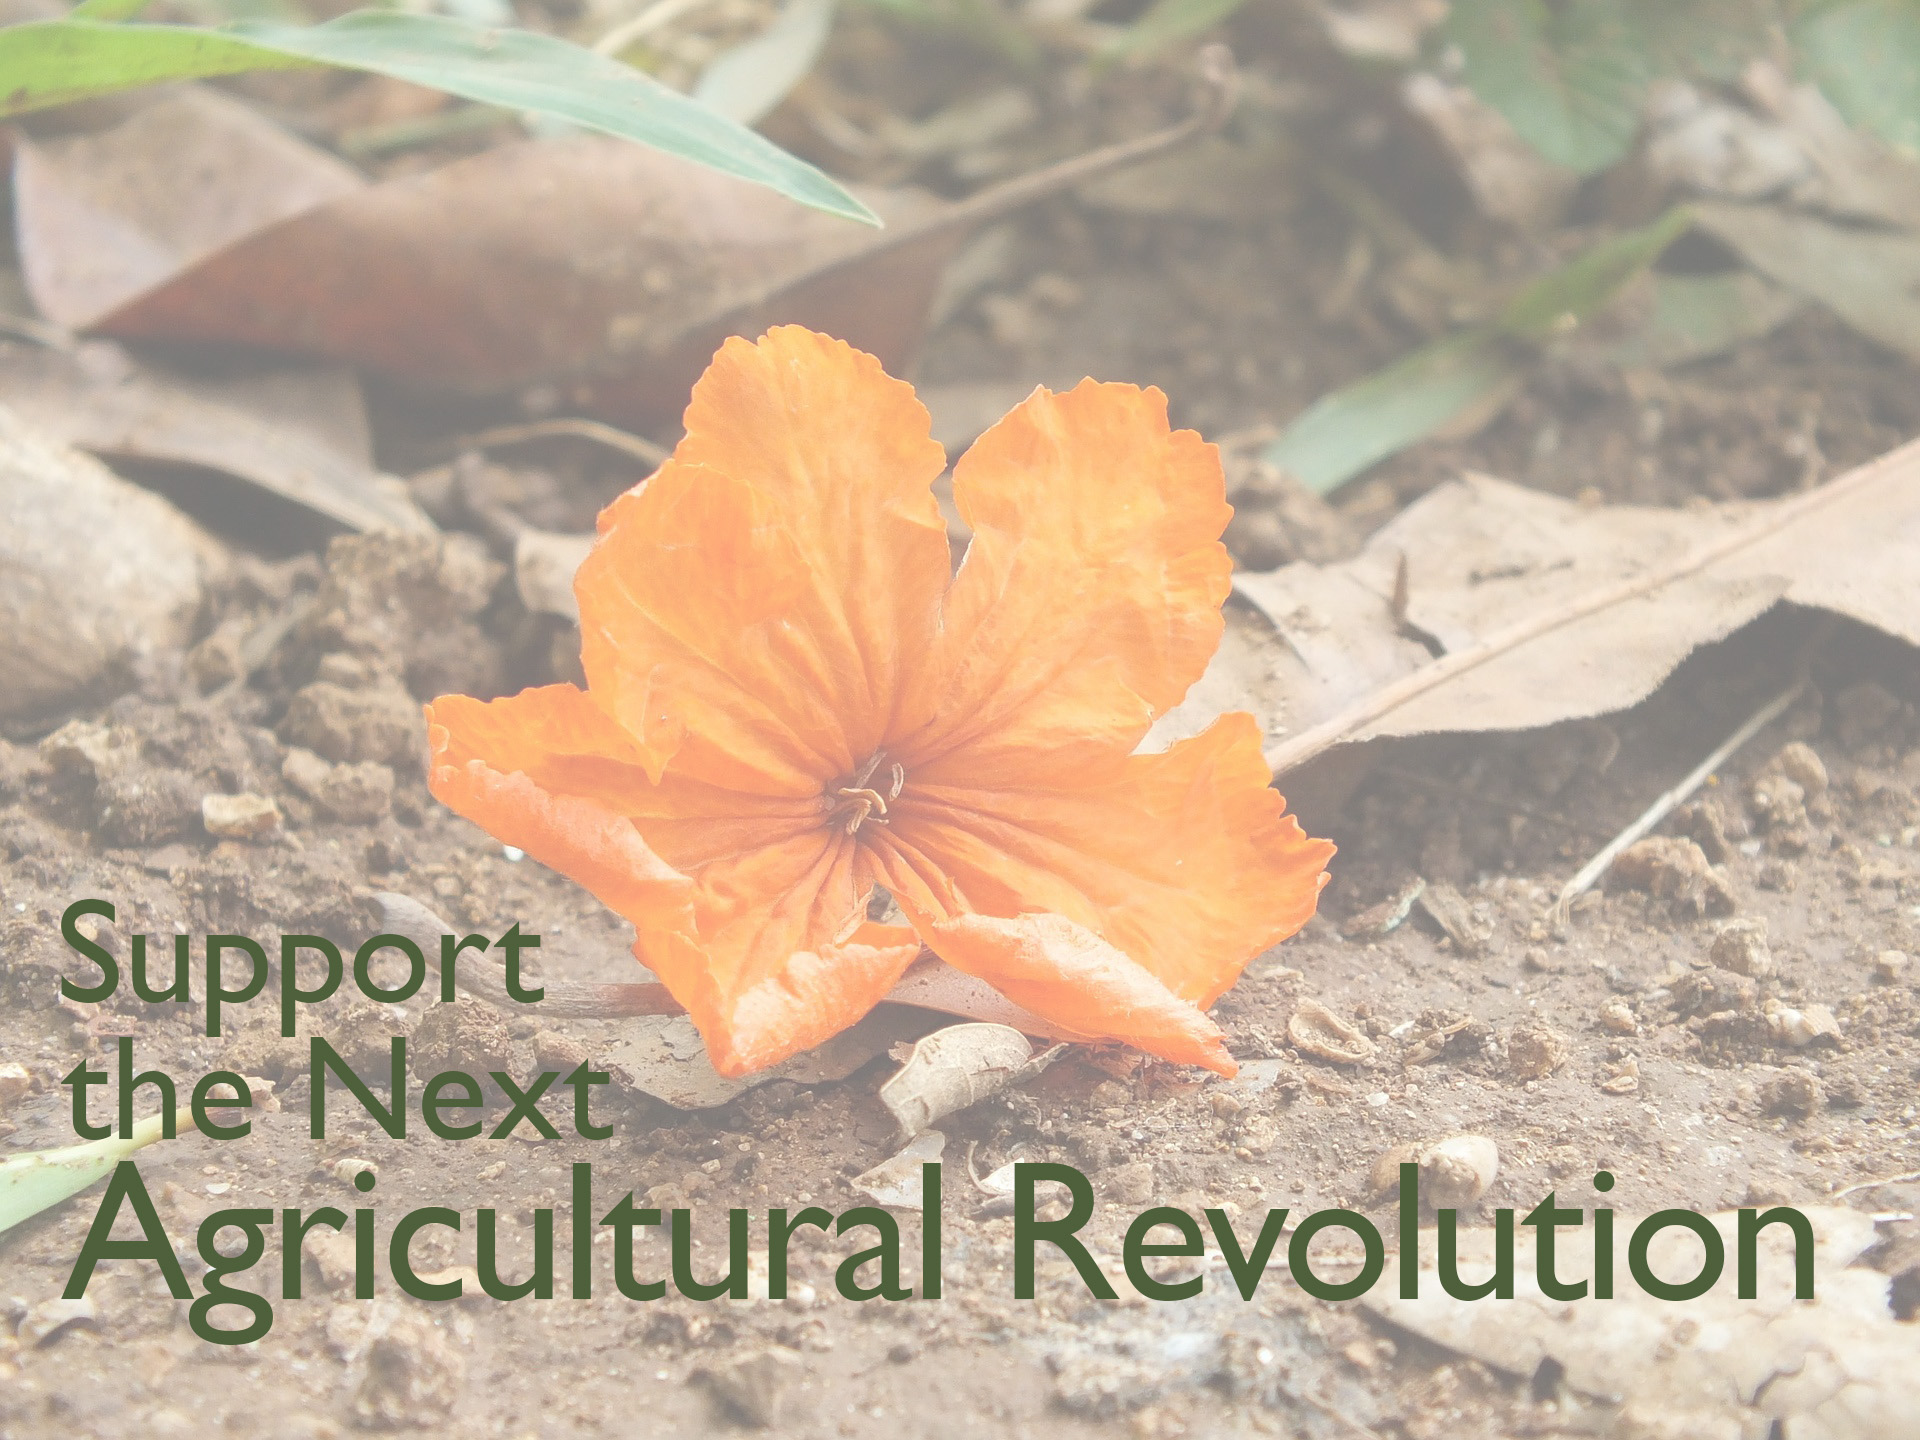 revised Support the next Agricultural Revolution